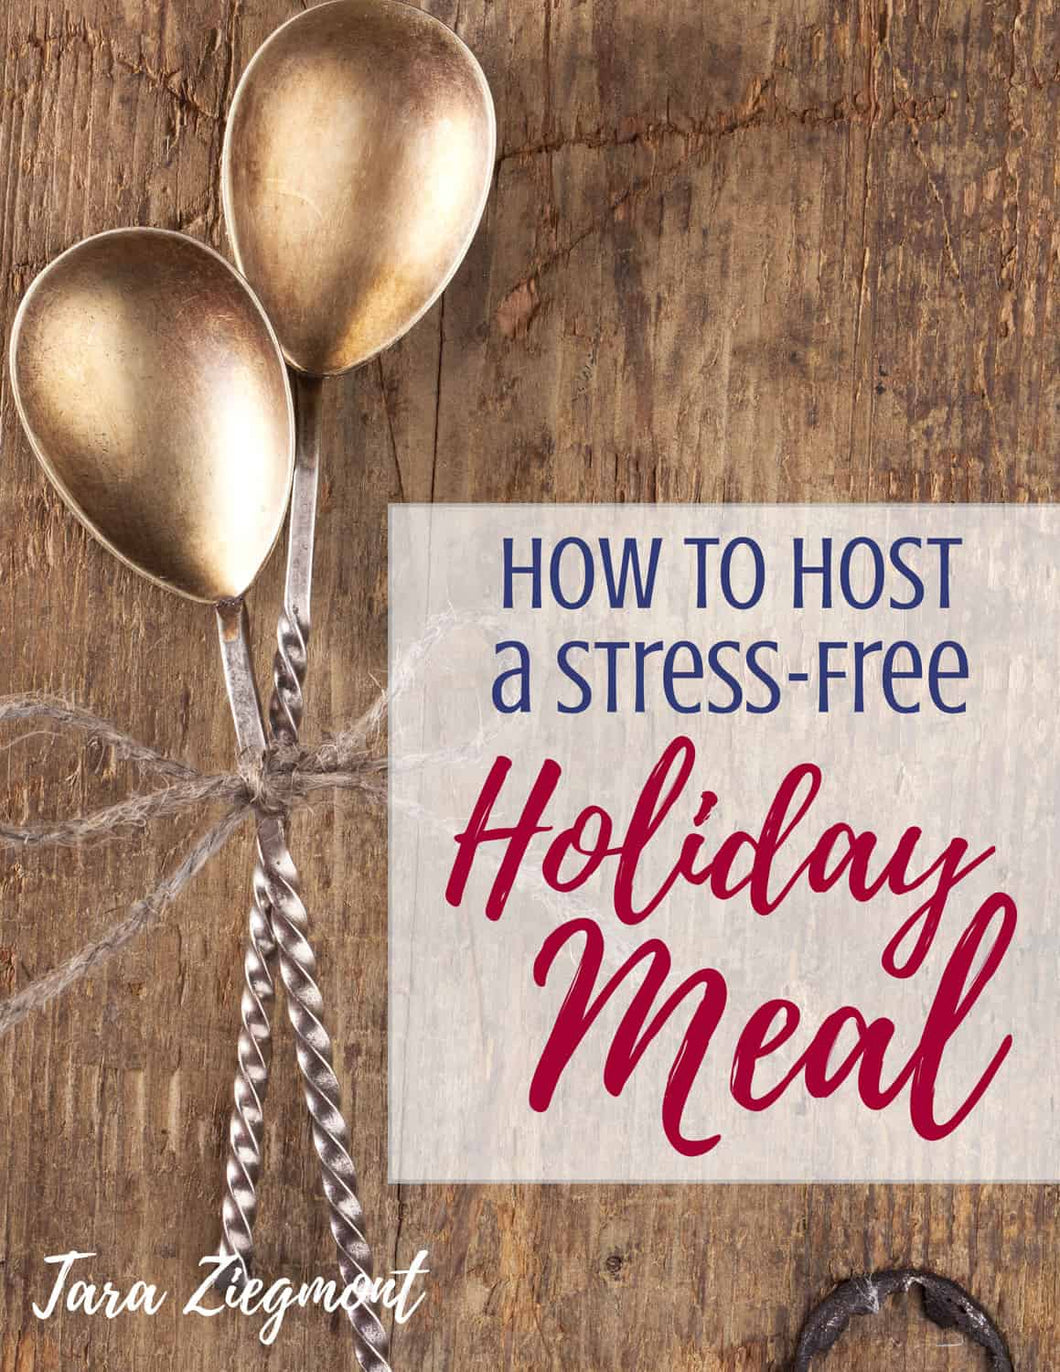 How to Host a Stress-Free Holiday Meal